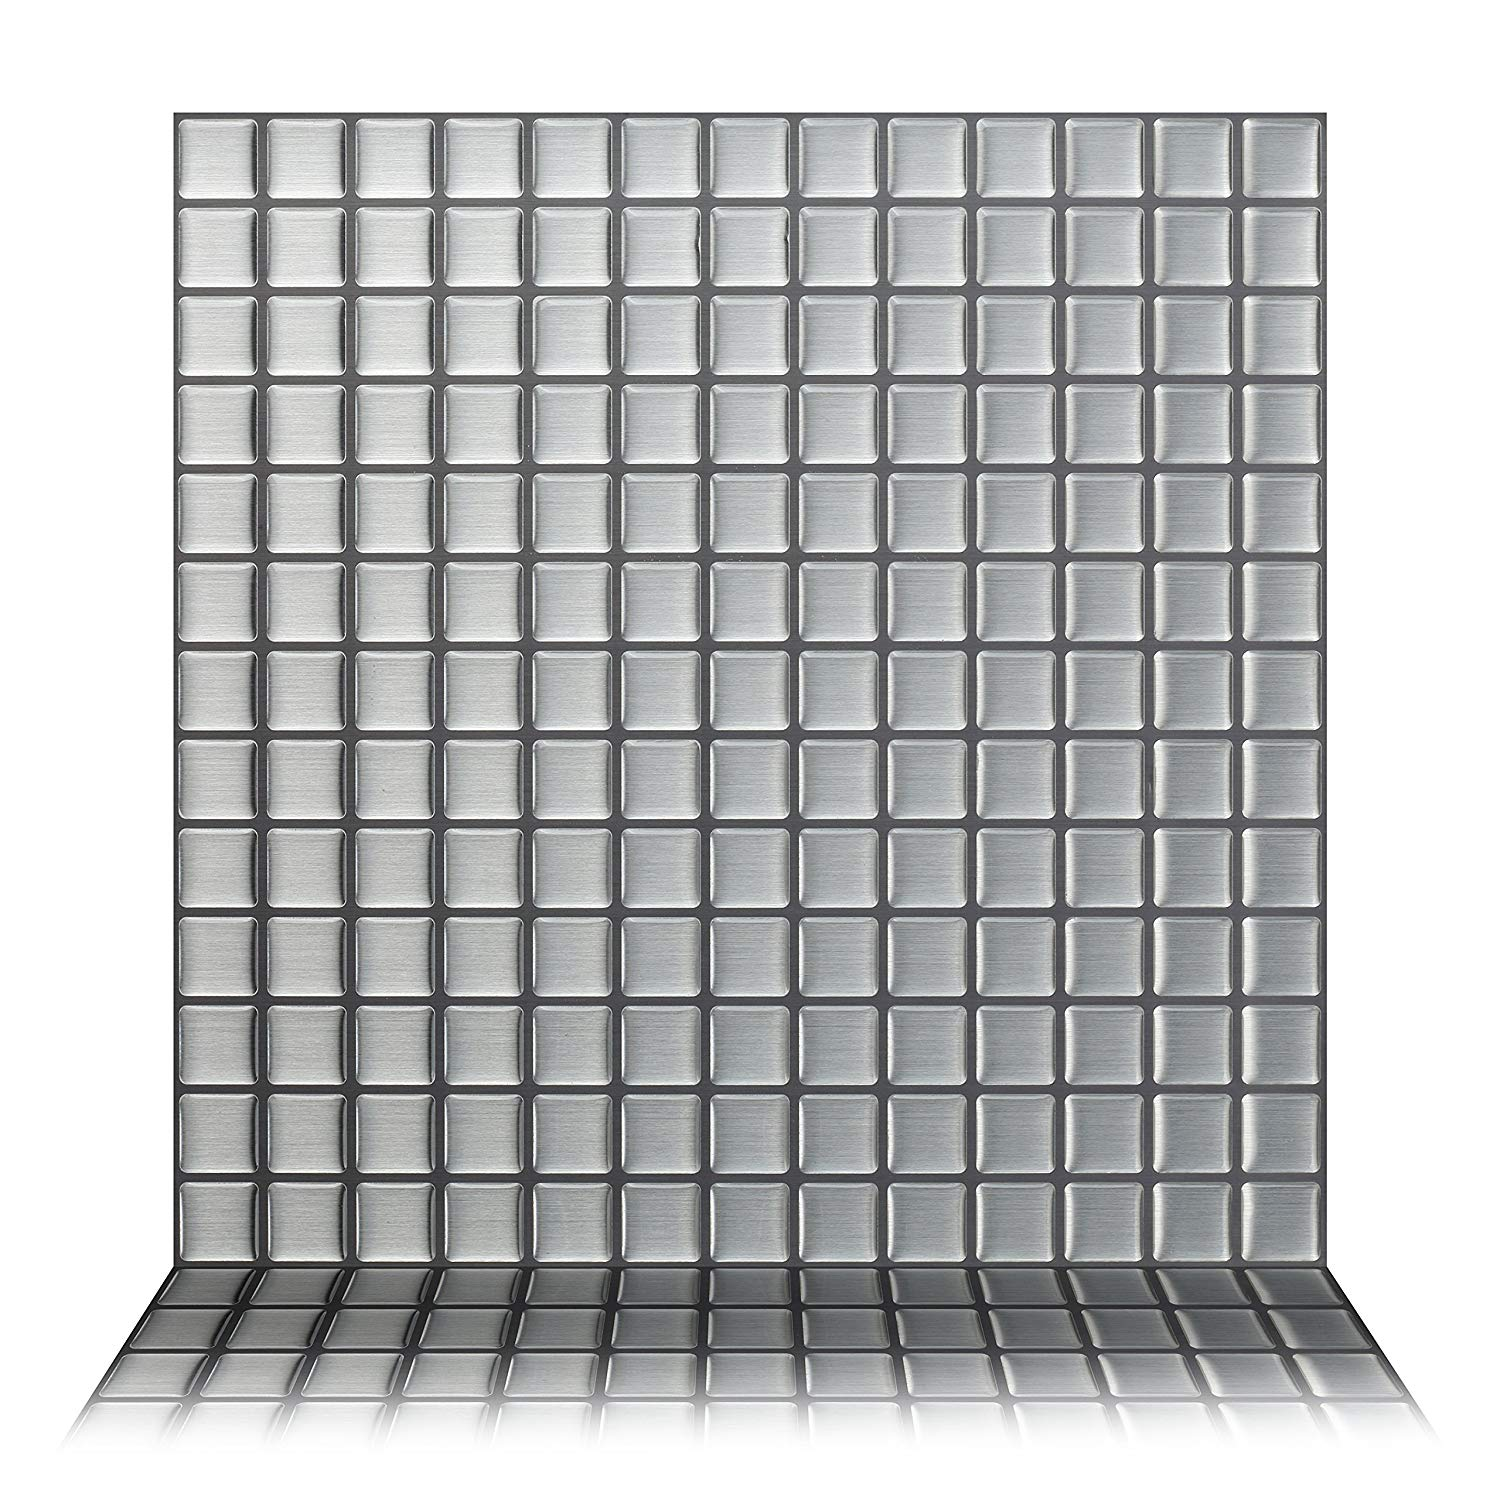 Tic Tac Tiles - Premium Anti Mold Peel and Stick Wall Tile Backsplash in Stainless Square (5-Tiles)